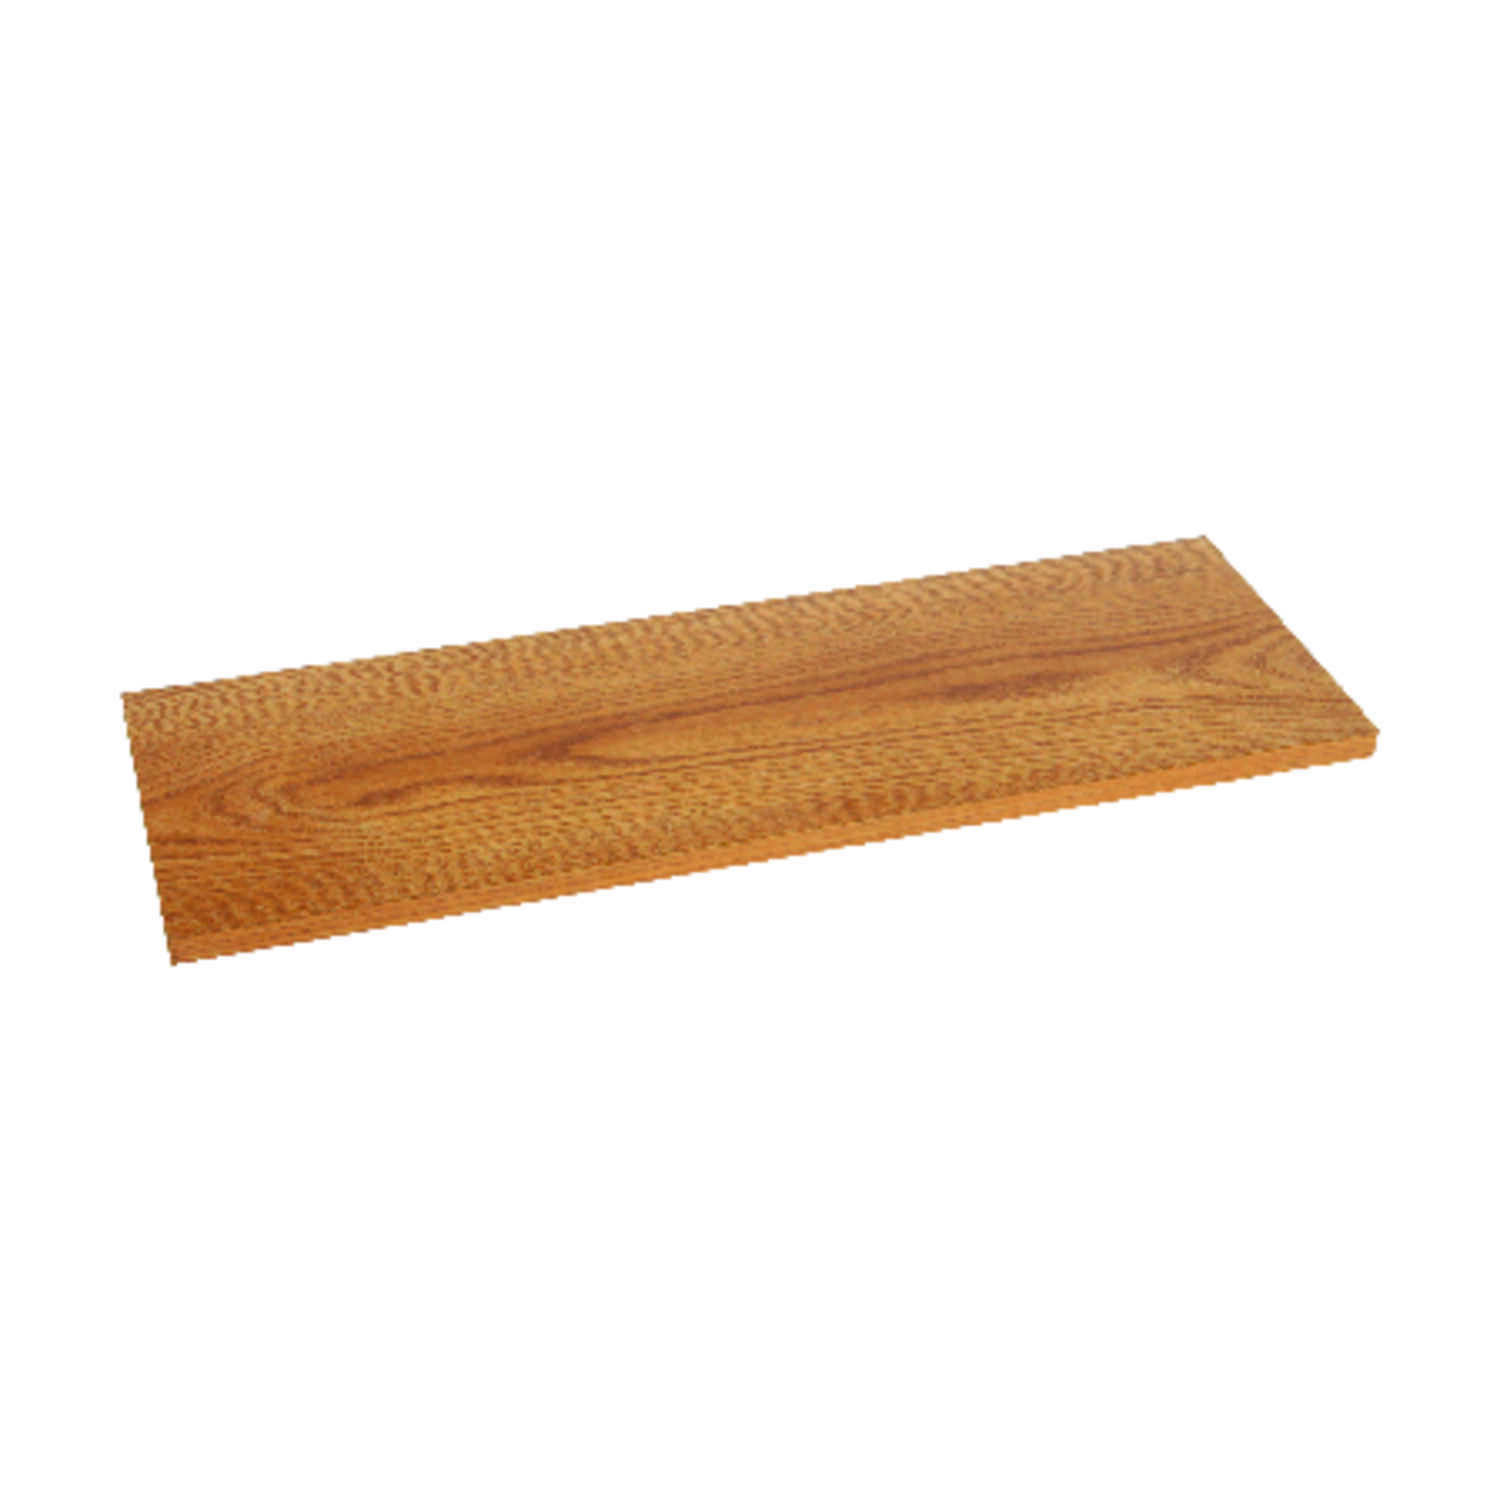 Knape & Vogt  8 in. H x 8 in. W x 48 in. D Oak  Melatex Laminate/Particle Board  Shelf